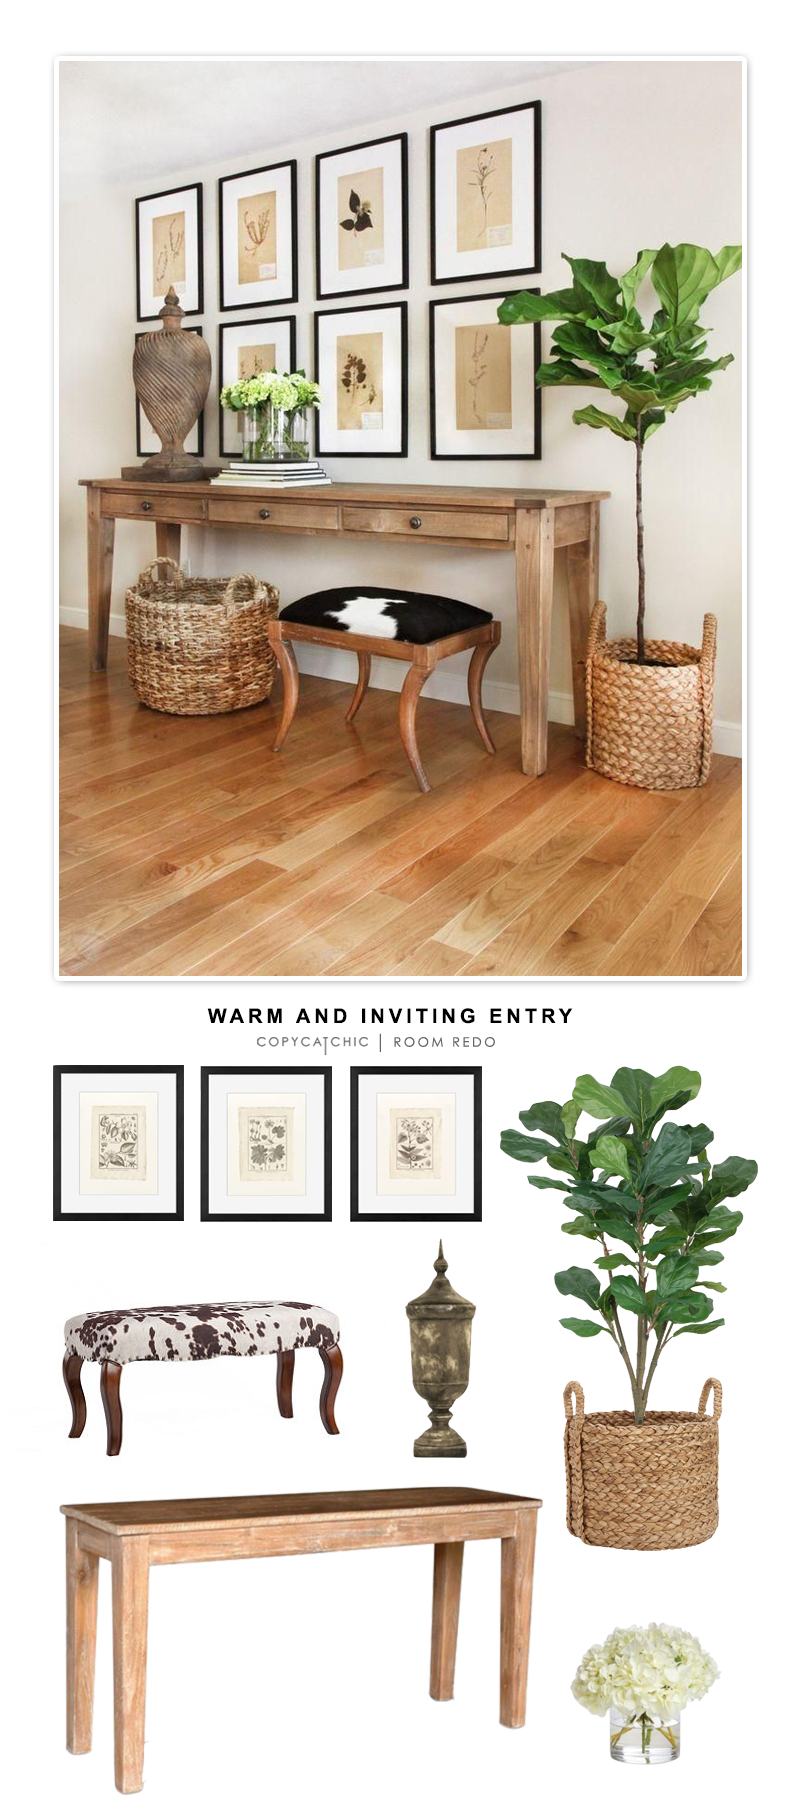 A-warm-and-inviting-entryway-designed-by-Kelly-McGuill-and-recreated-for-less-than-for-Copy-Ca-wallpaper-wp4002769